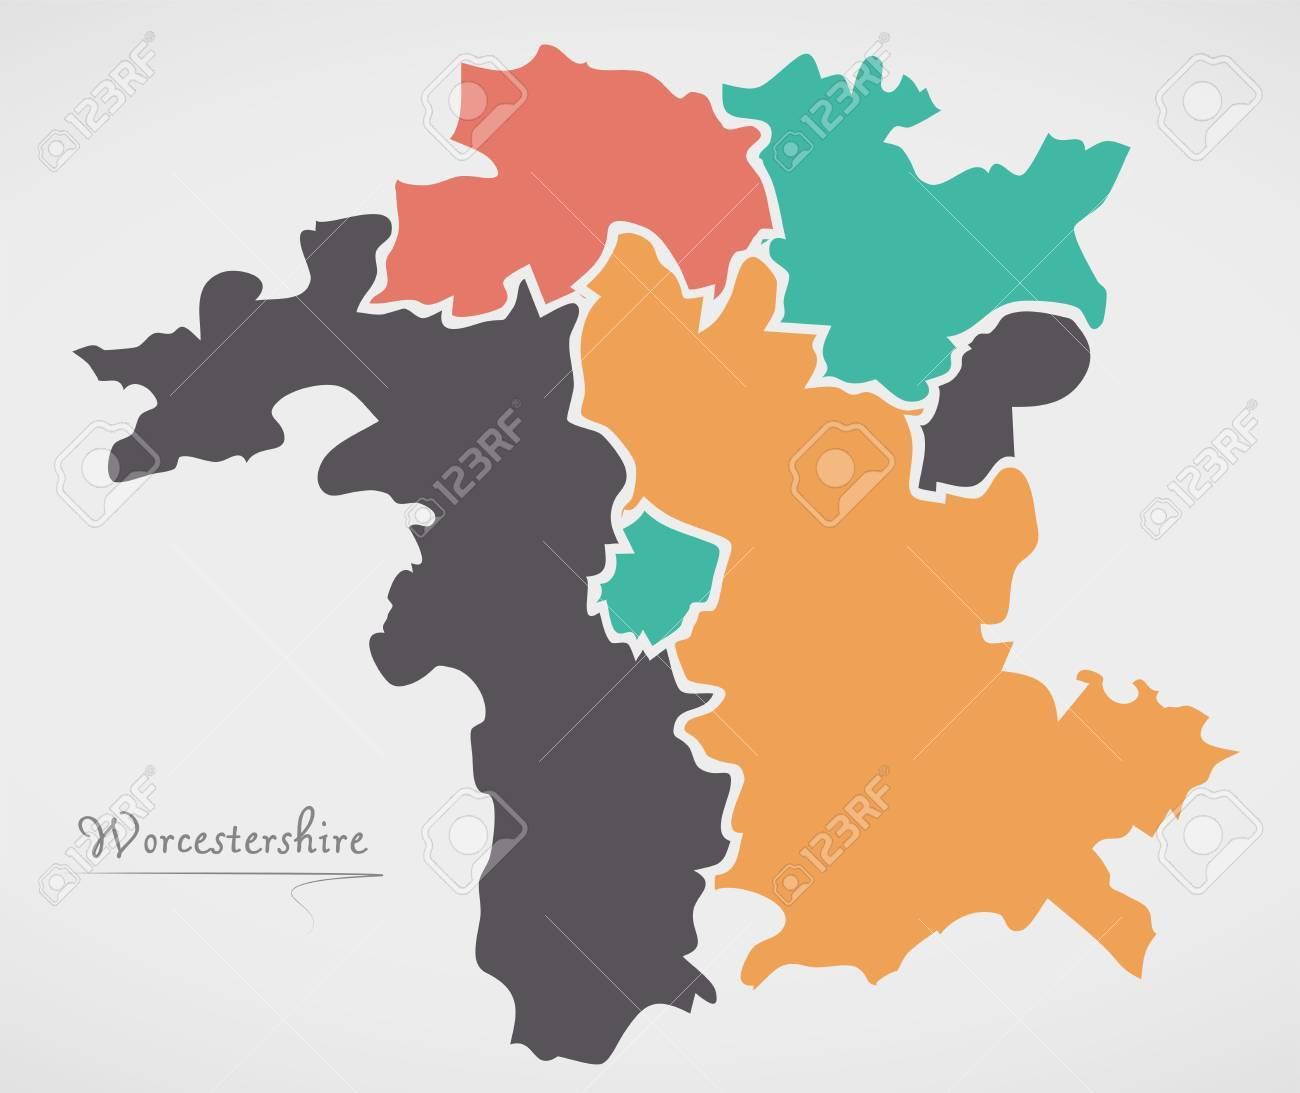 Worcestershire England Map With States And Modern Round Shapes